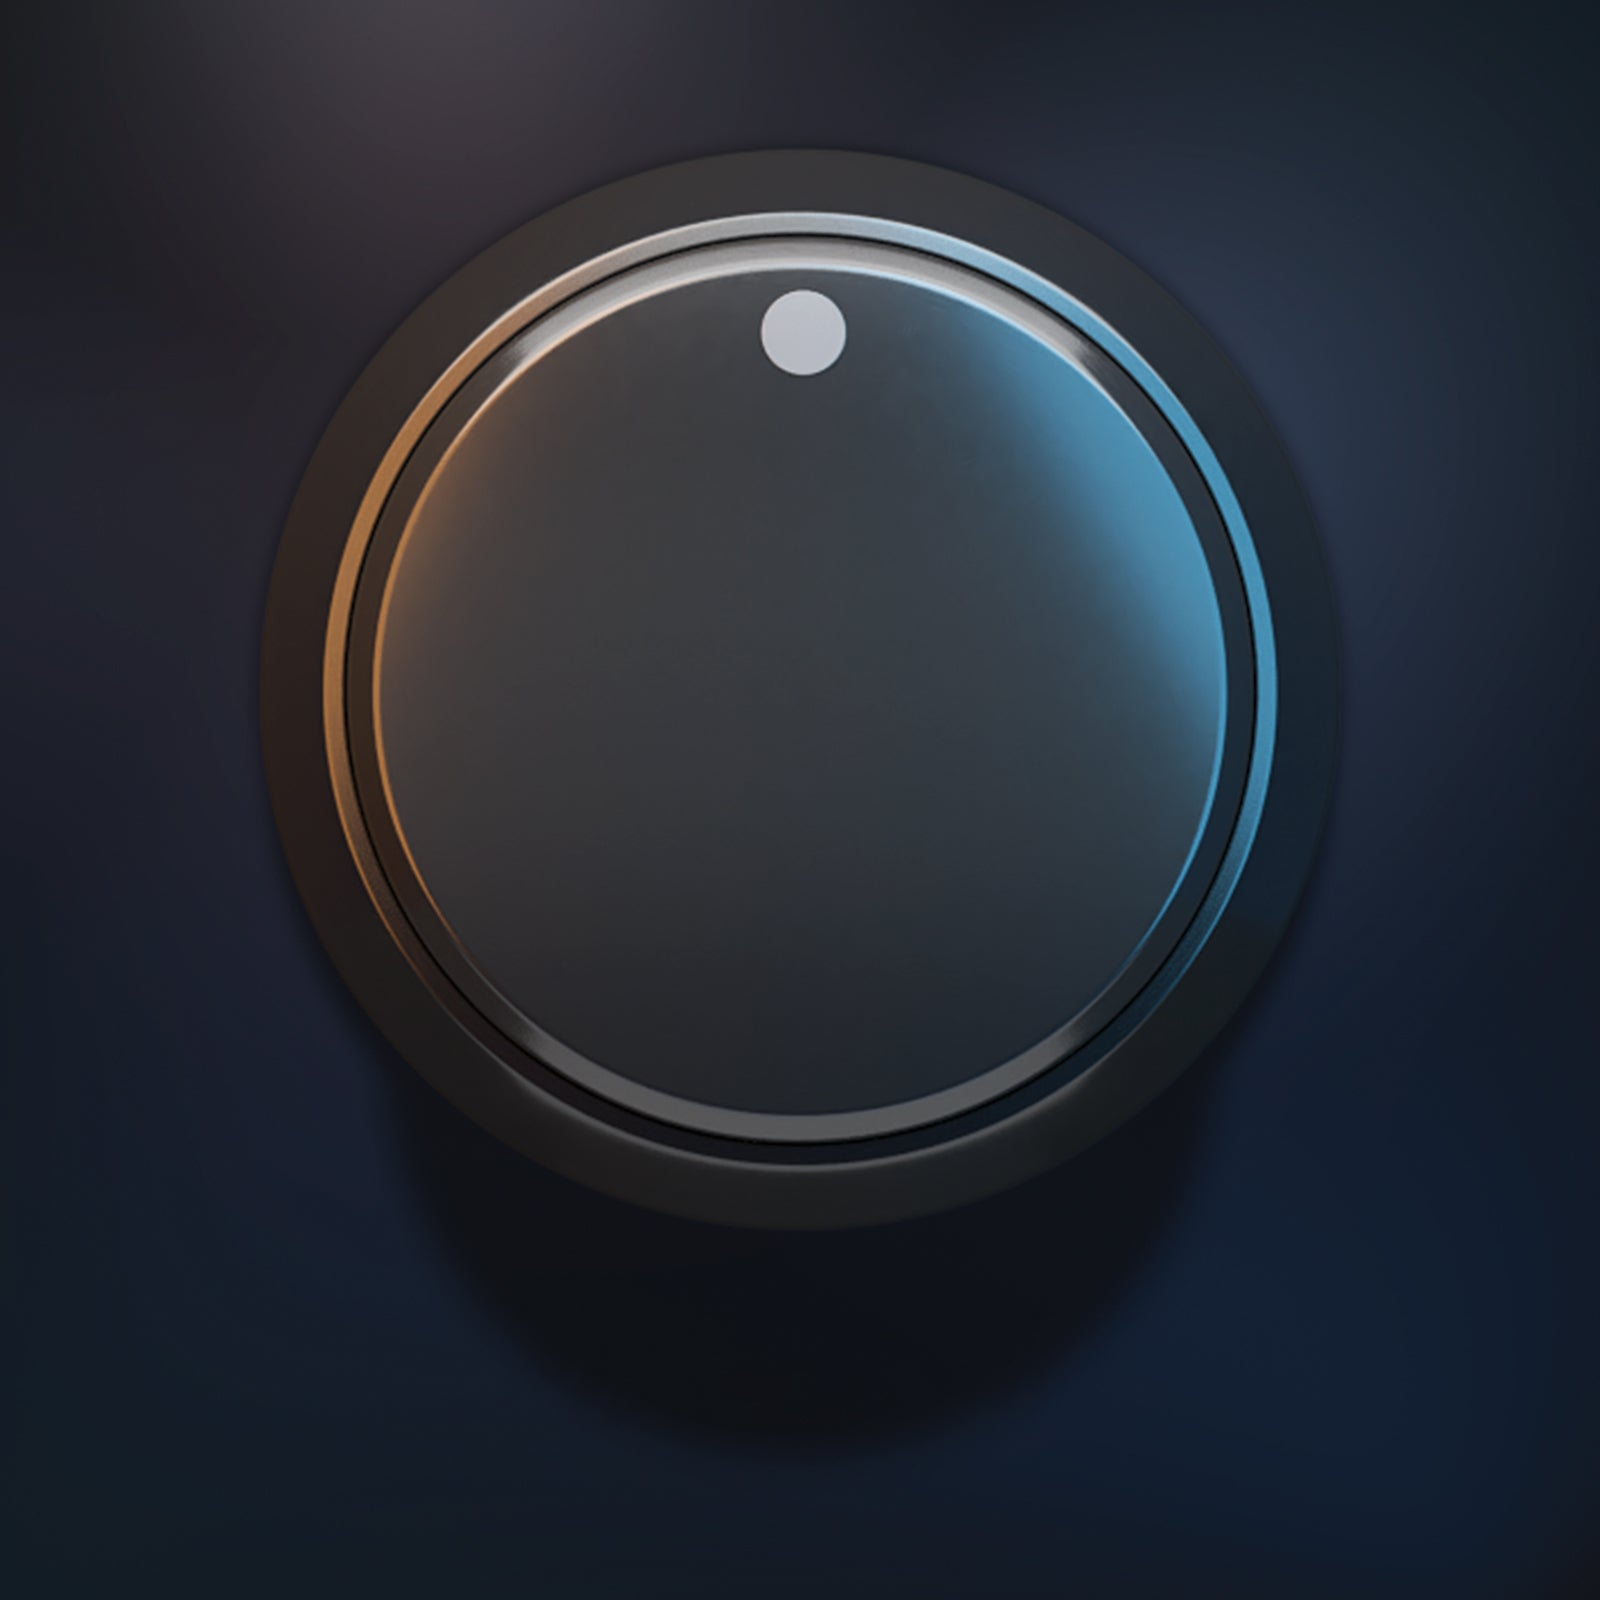 Standart knob audio 3D model UI